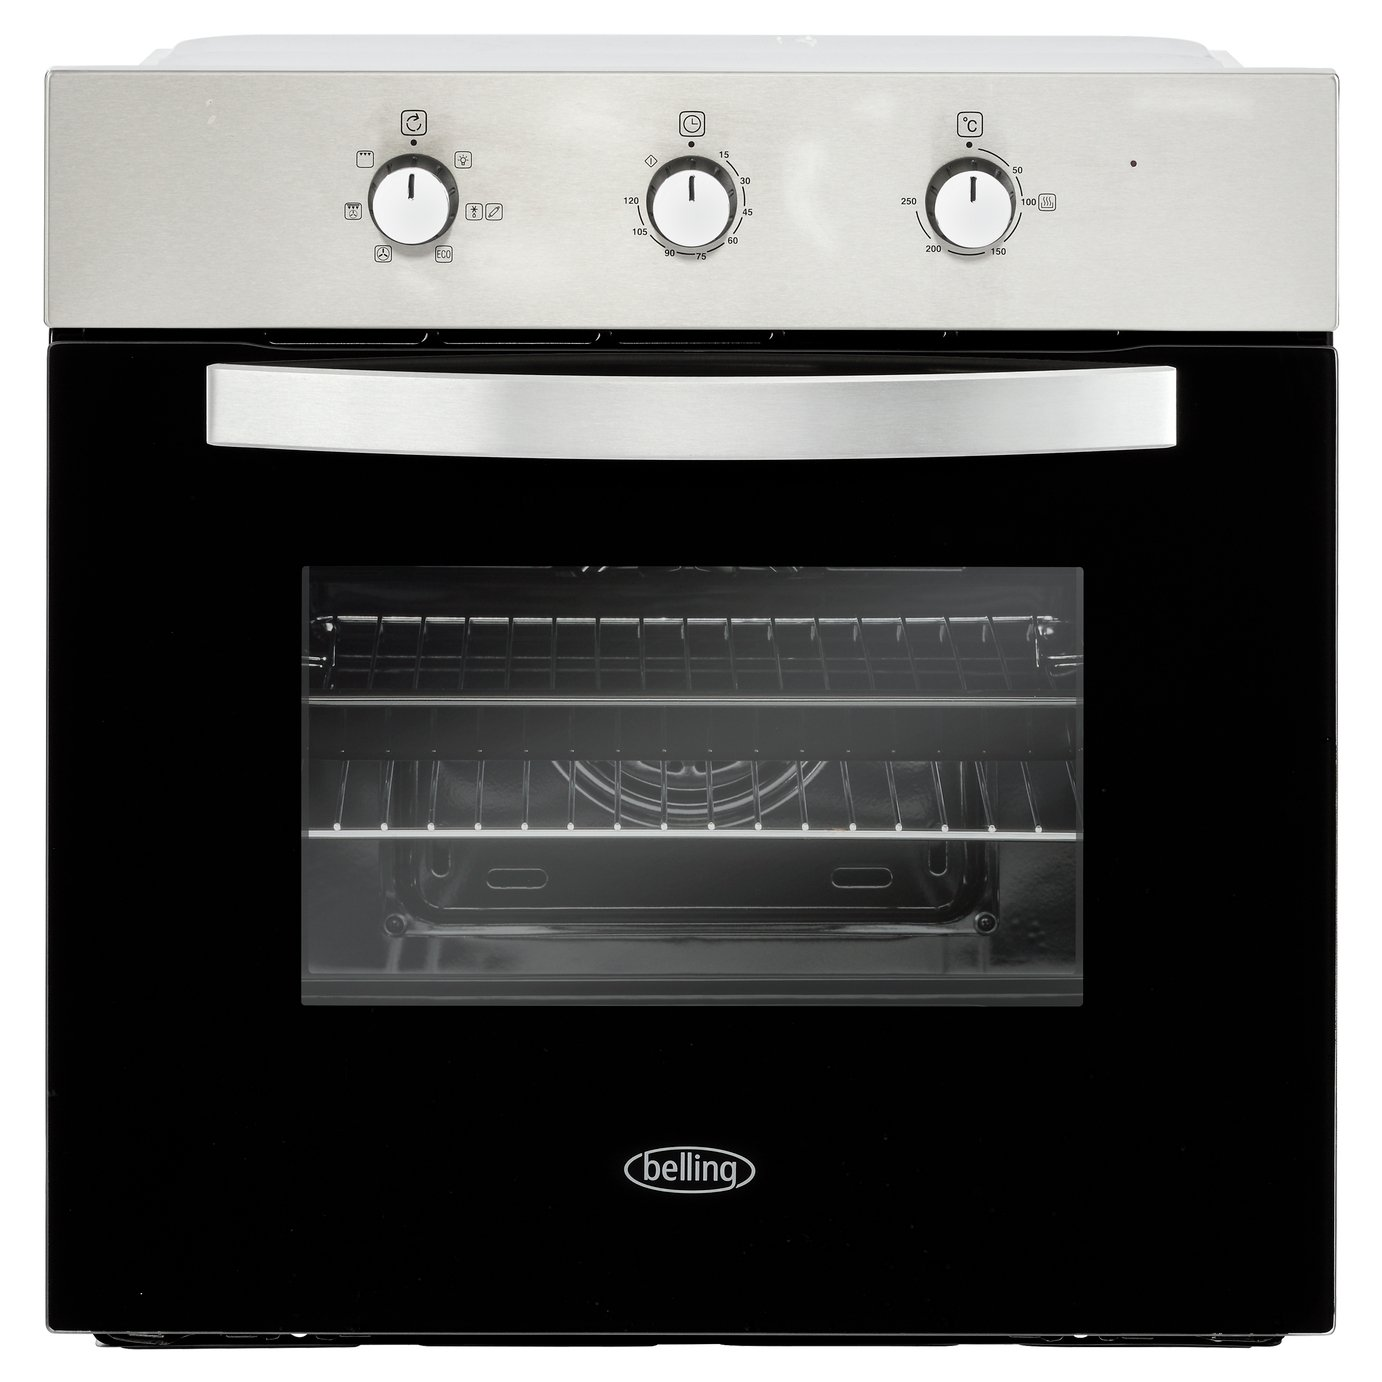 Belling 444410812 BI602MM Multifunction Electric Built-in Single Oven With Timer - Stainless Steel